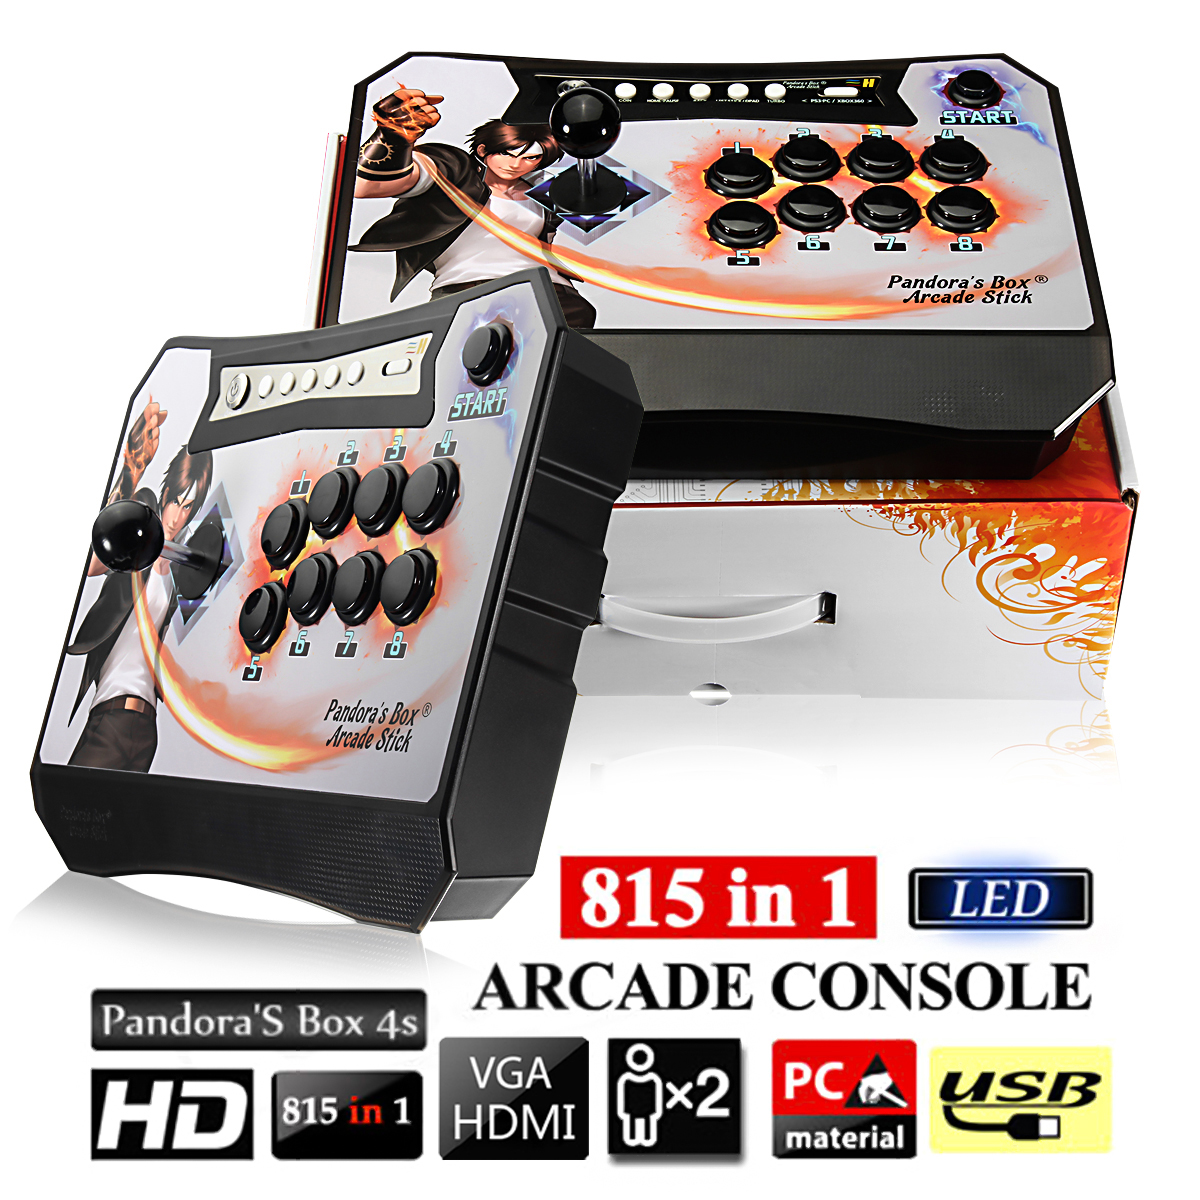 Box 4S 815 in 1 Single Player Arcade Game Console with 2.4Ghz Wireless Controller HDMI /VGA Cable цена